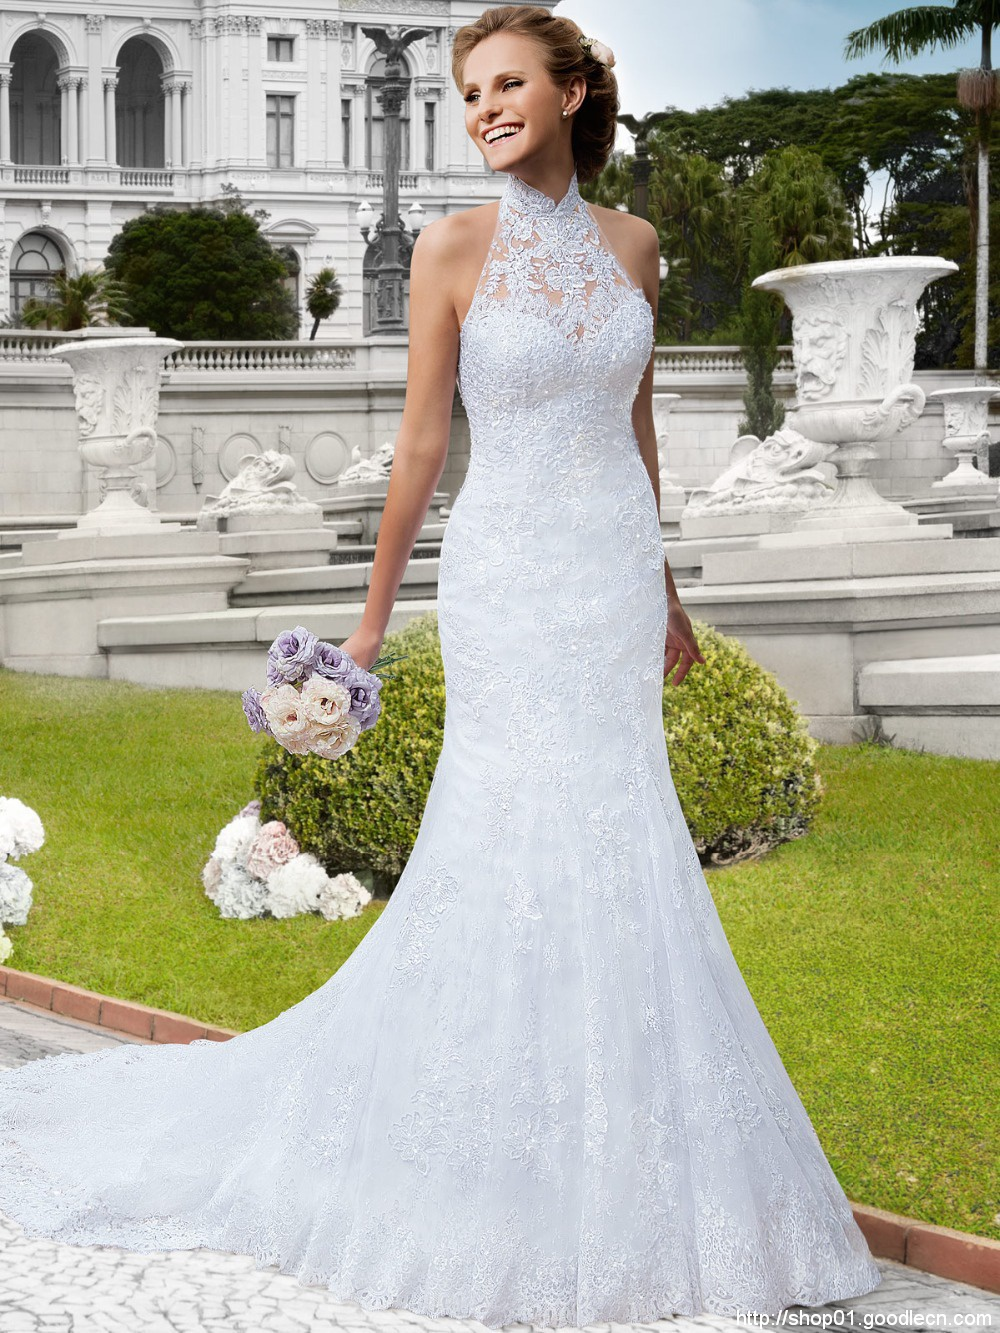 Mermaid Wedding Dresses 2015 Vestido De Noiva Summer Style Robe De Mariage See Through Beaded Lace Wedding Dress Gowns BW-51